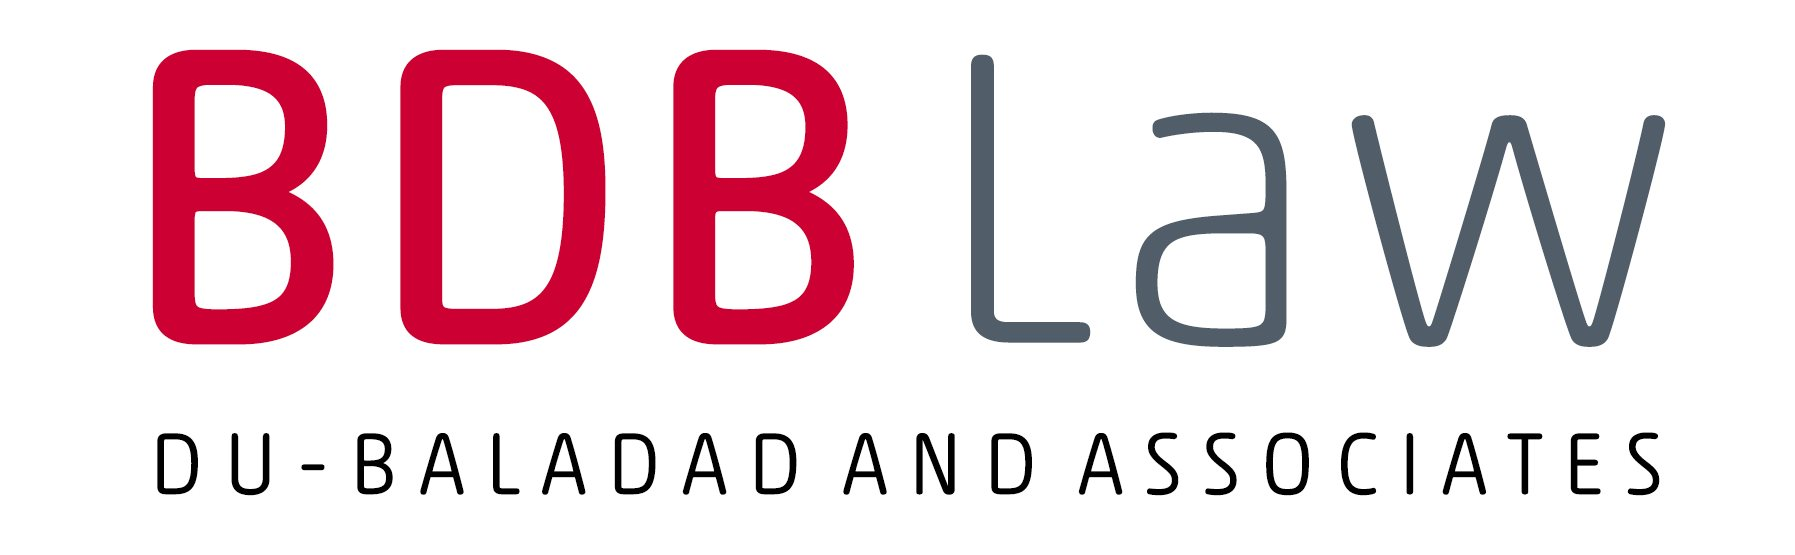 Du-Baladad and Associates (BDB Law)